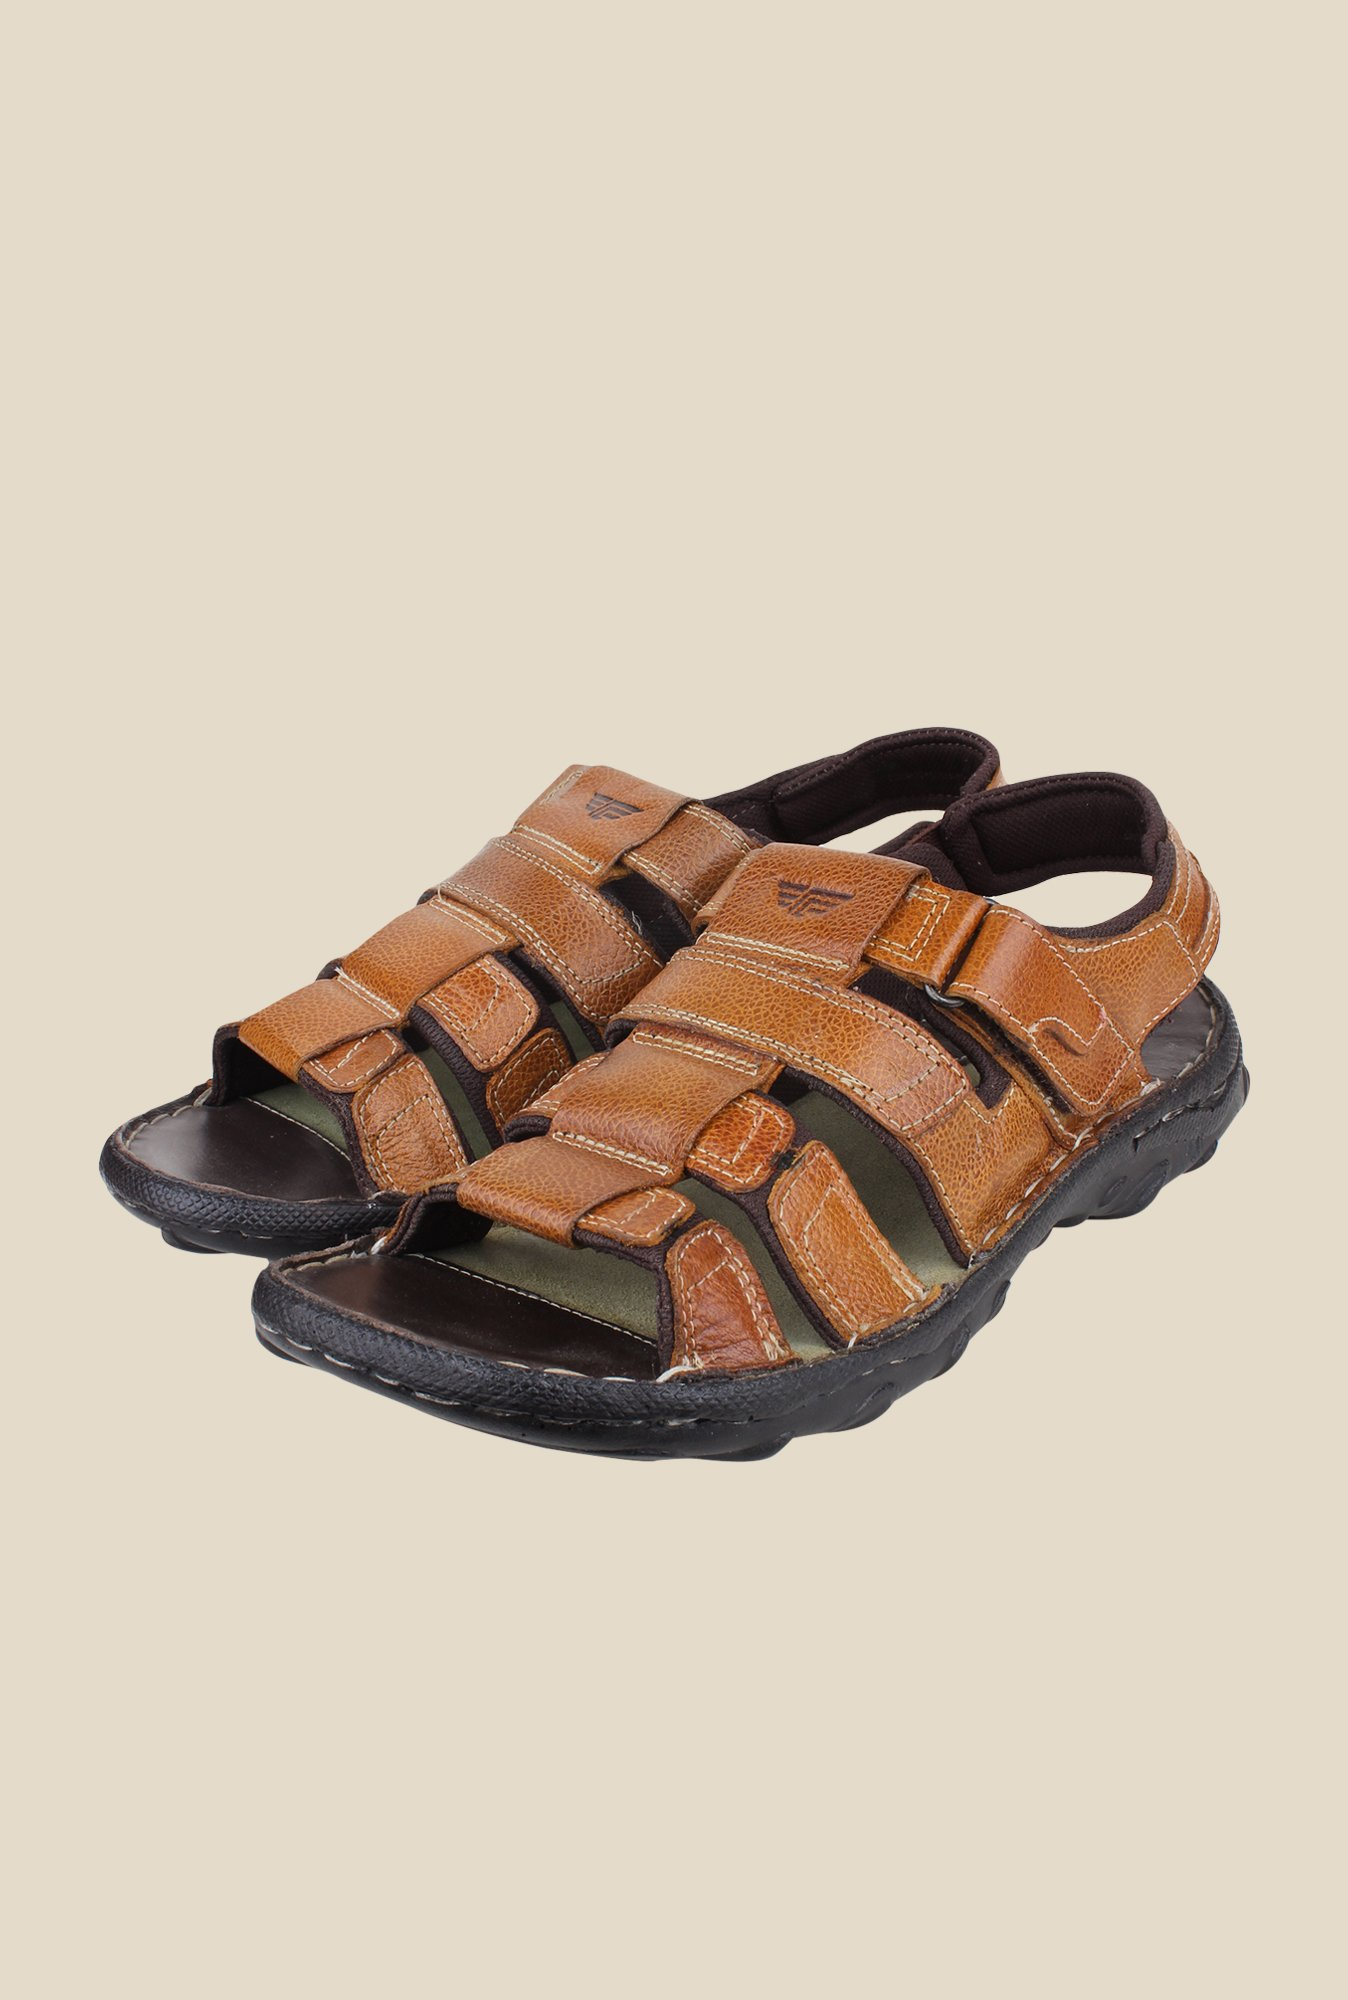 Red Tape Tan Fisherman Sandals